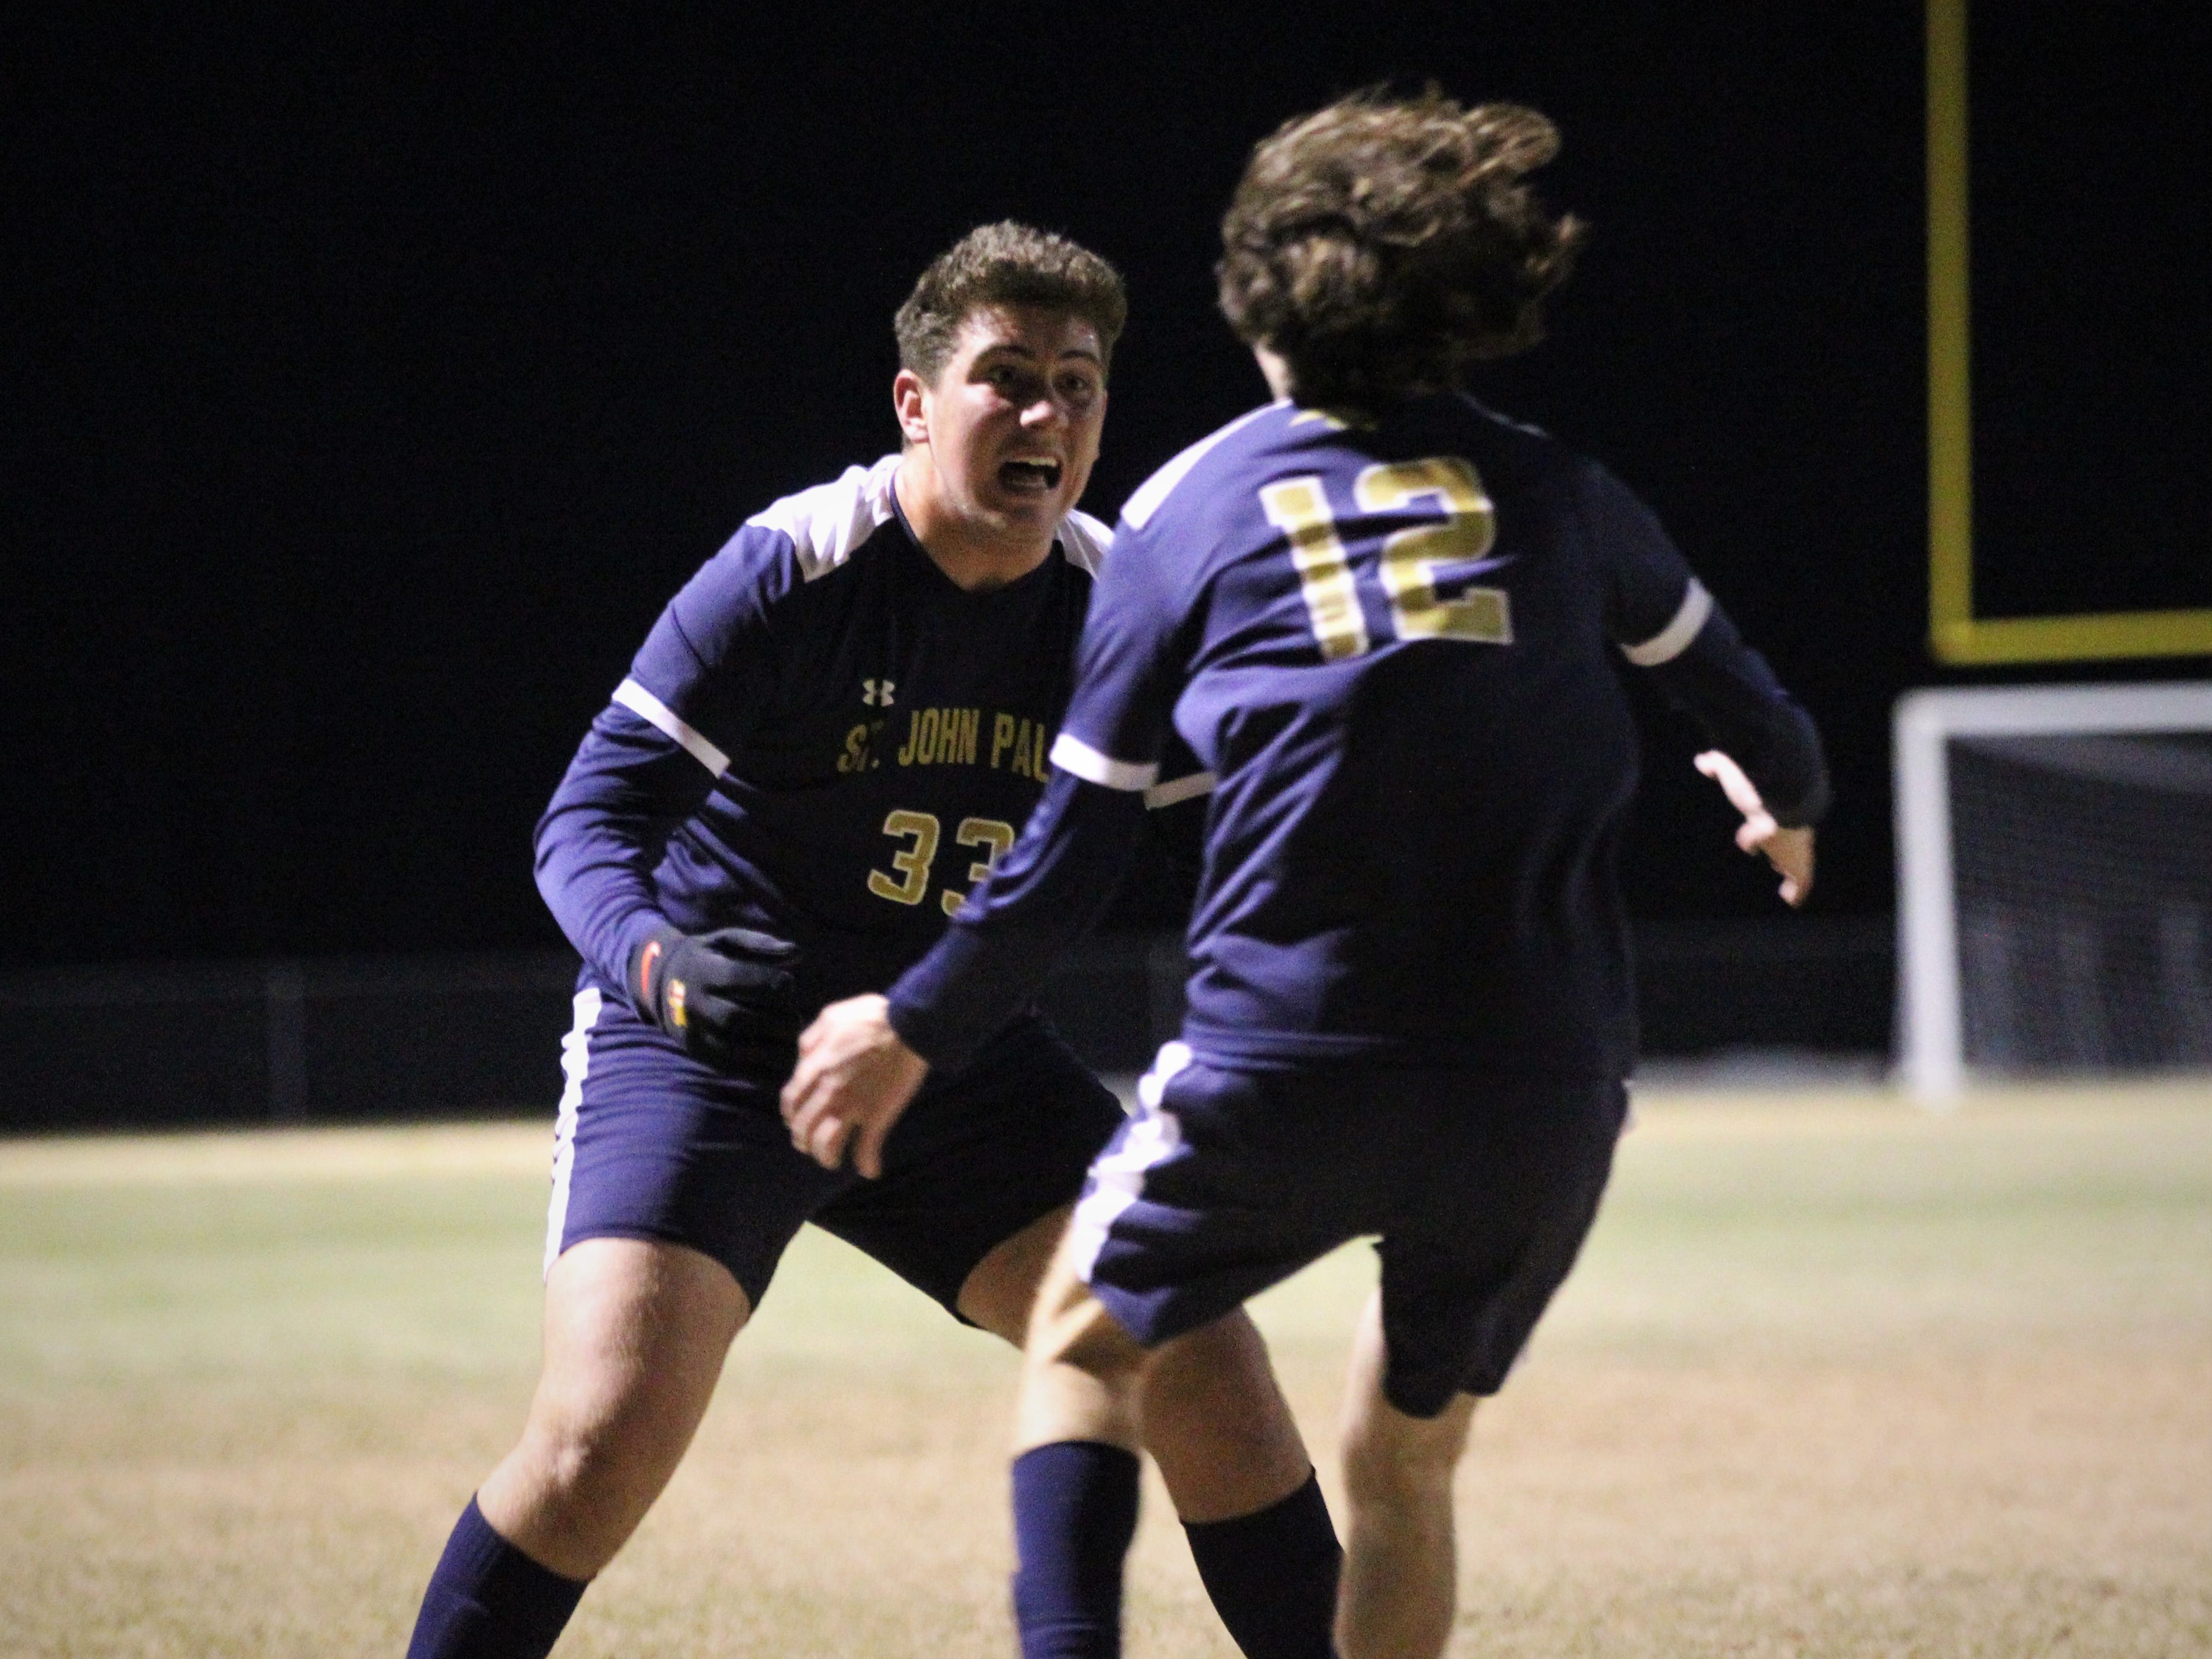 St. John Paul II midfielder Rocco Ricco (33) runs up to senior Tyler Lattner after Lattner headed in a goal off Ricco's throw-in as SJP2 beat Wakulla Christian 2-0 during a District 1-1A boys soccer district quarterfinal on Jan. 28, 2019.